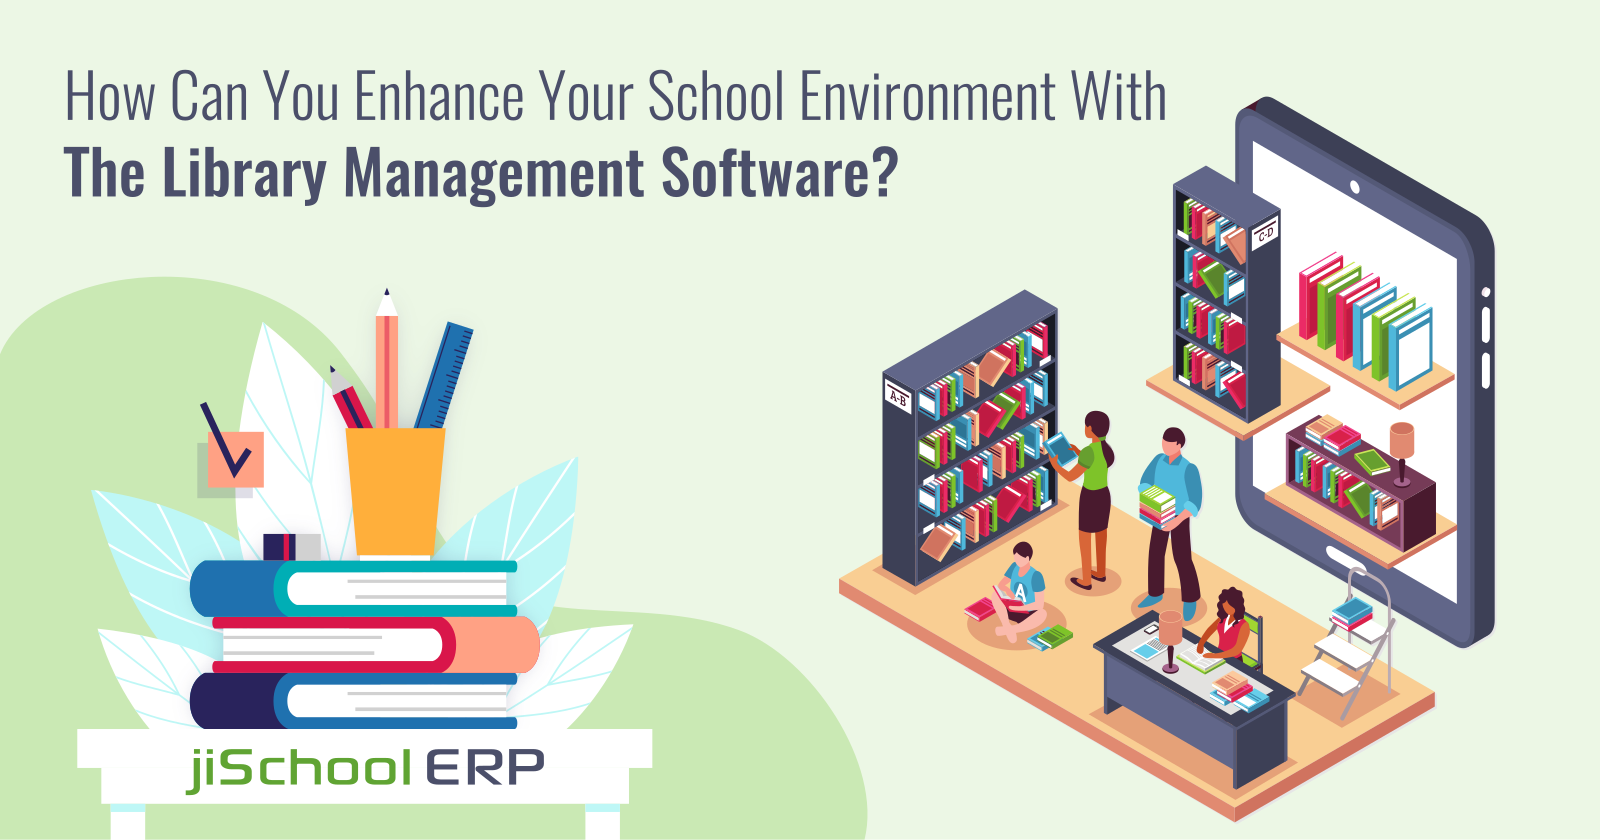 How Can You Enhance Your School Environment With The Library Management Software?